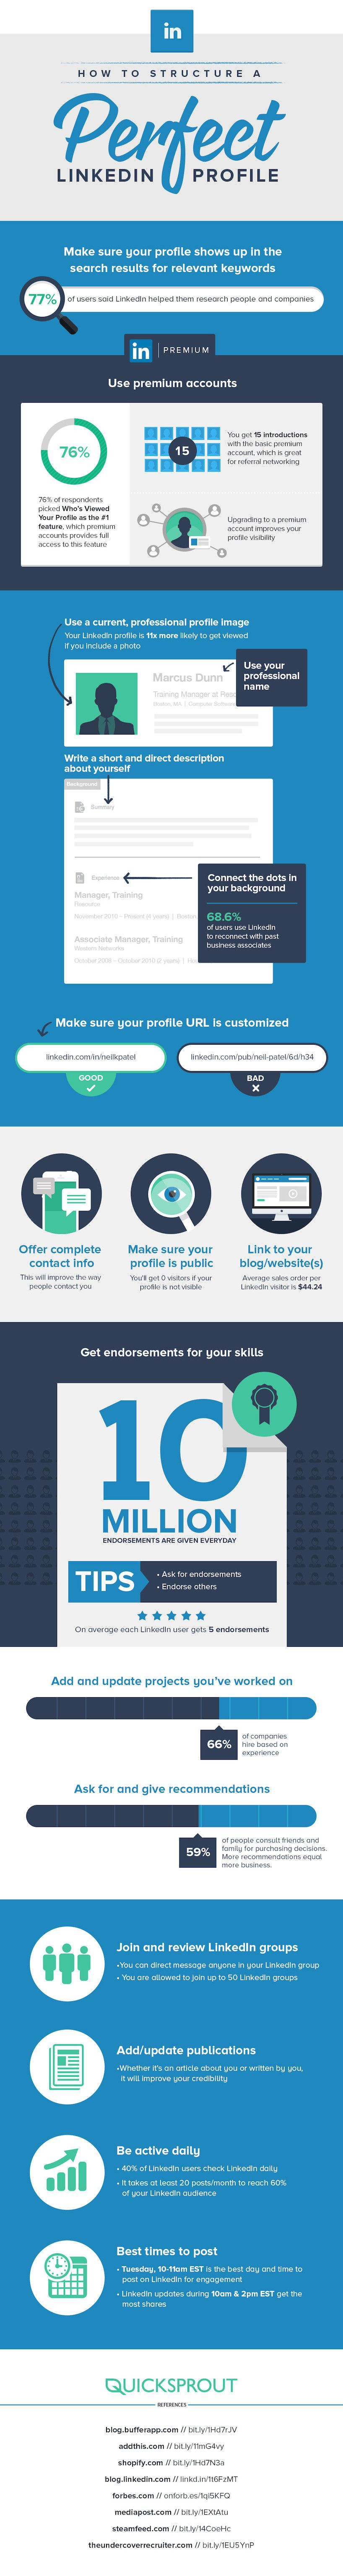 How To Structure A Perfect Linkedin Profile Infographic Social Media Infographic Linkedin Profile Linkedin Tips